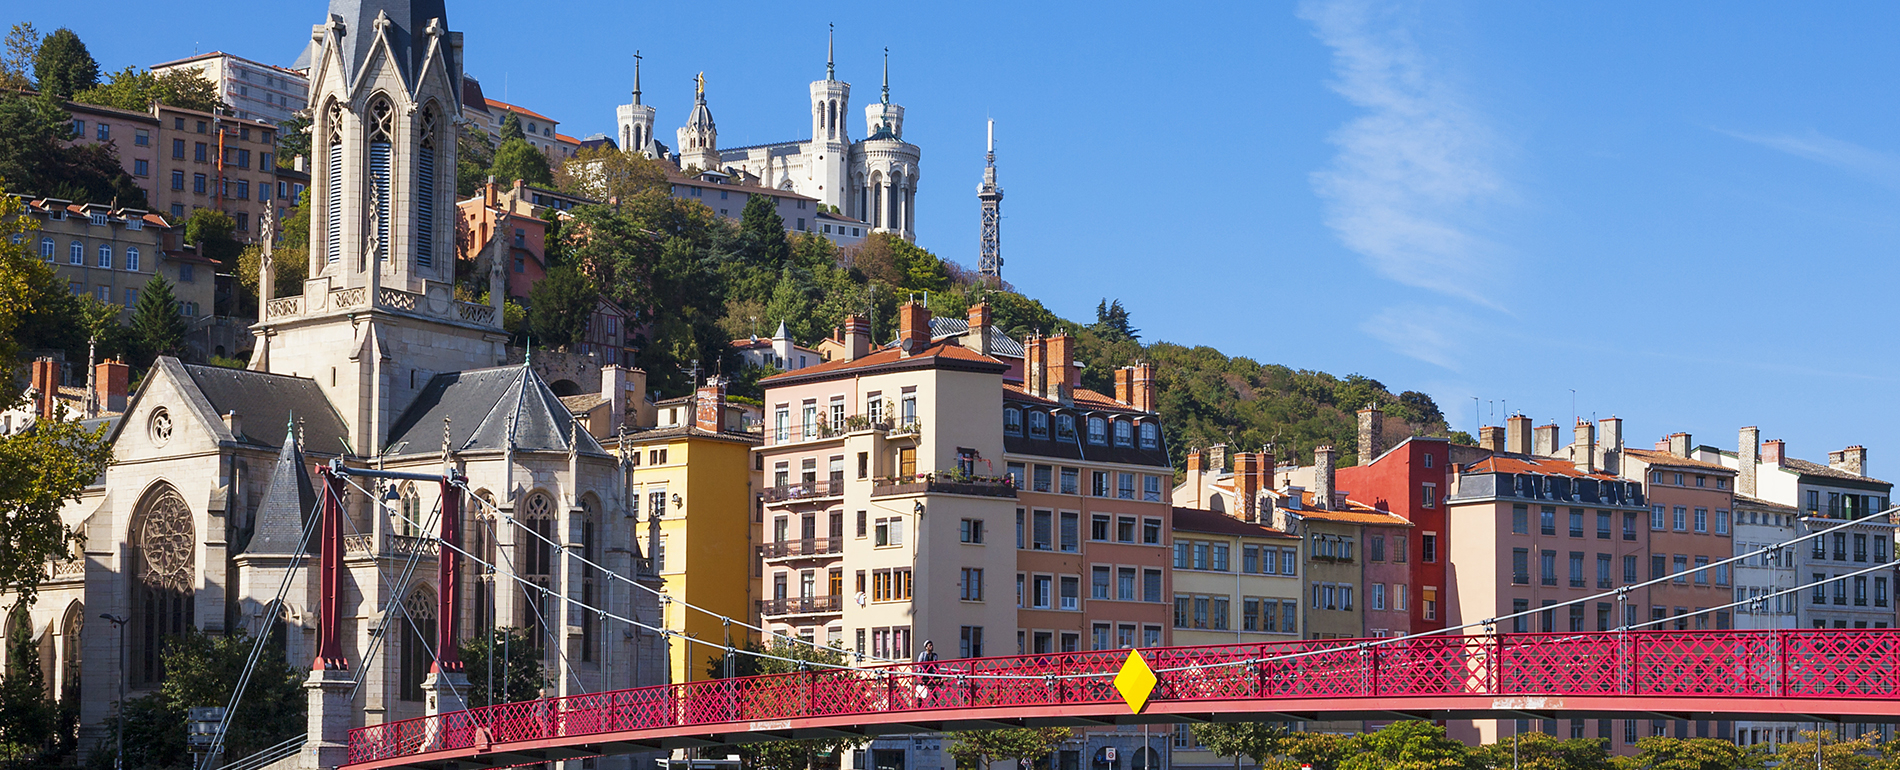 2018 ISPE Europe Biotechnology Conference in Lyon, France